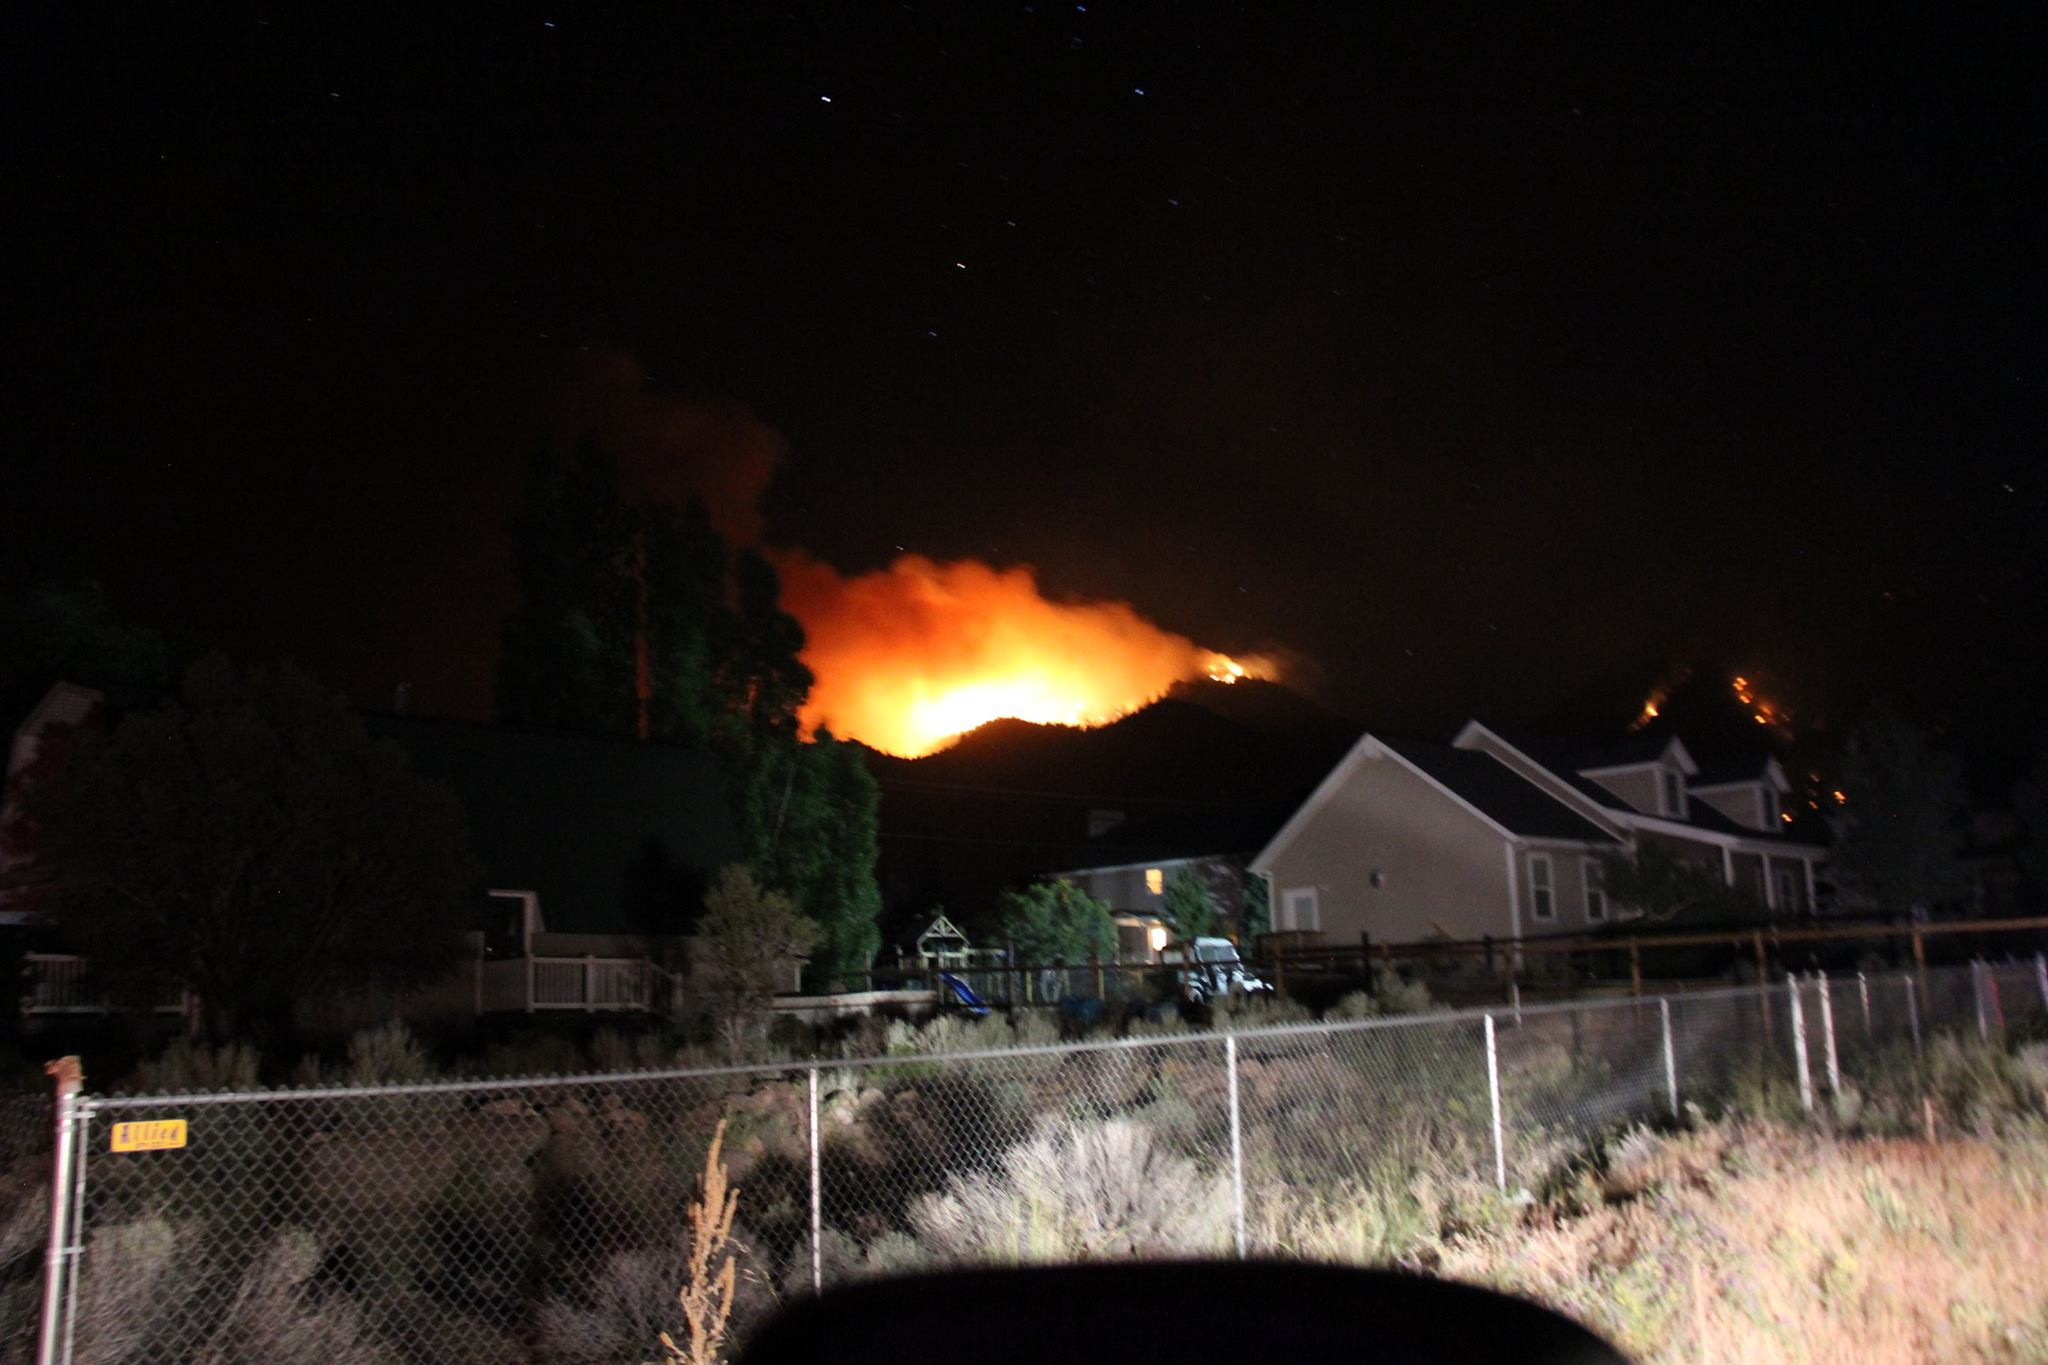 Lightning-caused fire burning on Saddle Mountain in the Pine Valley Wilderness of the Dixie National Forest, Washington County, Utah, June 23, 2016 | Photo courtesy of Washington County Sheriff Cory Pulsipher, St. George News